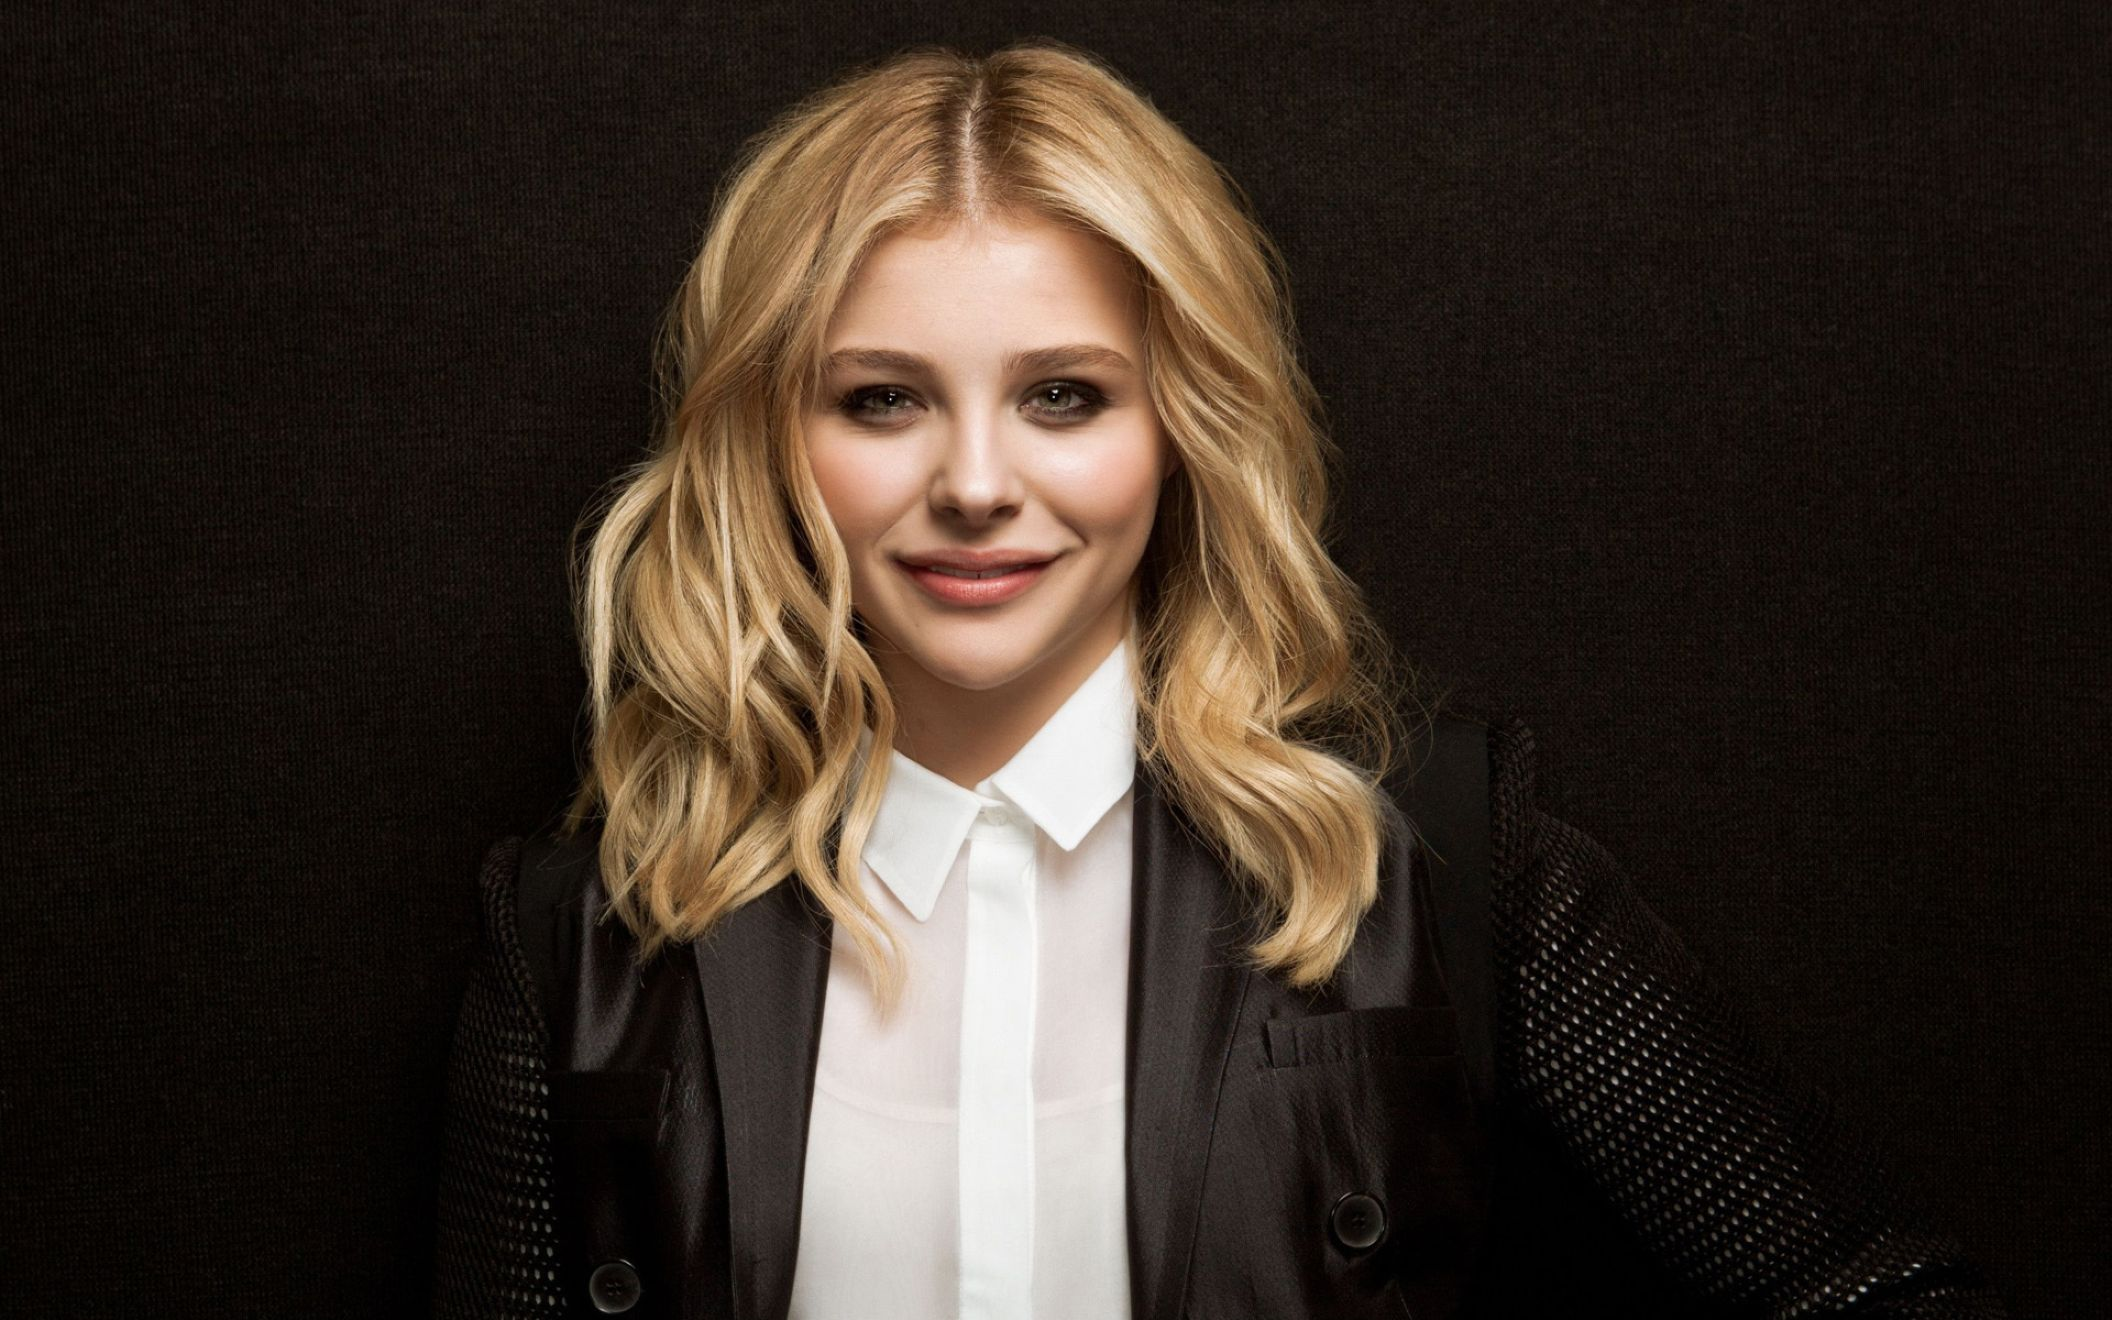 Download free HD Chloe Moretz 41 Wide Wallpaper, image